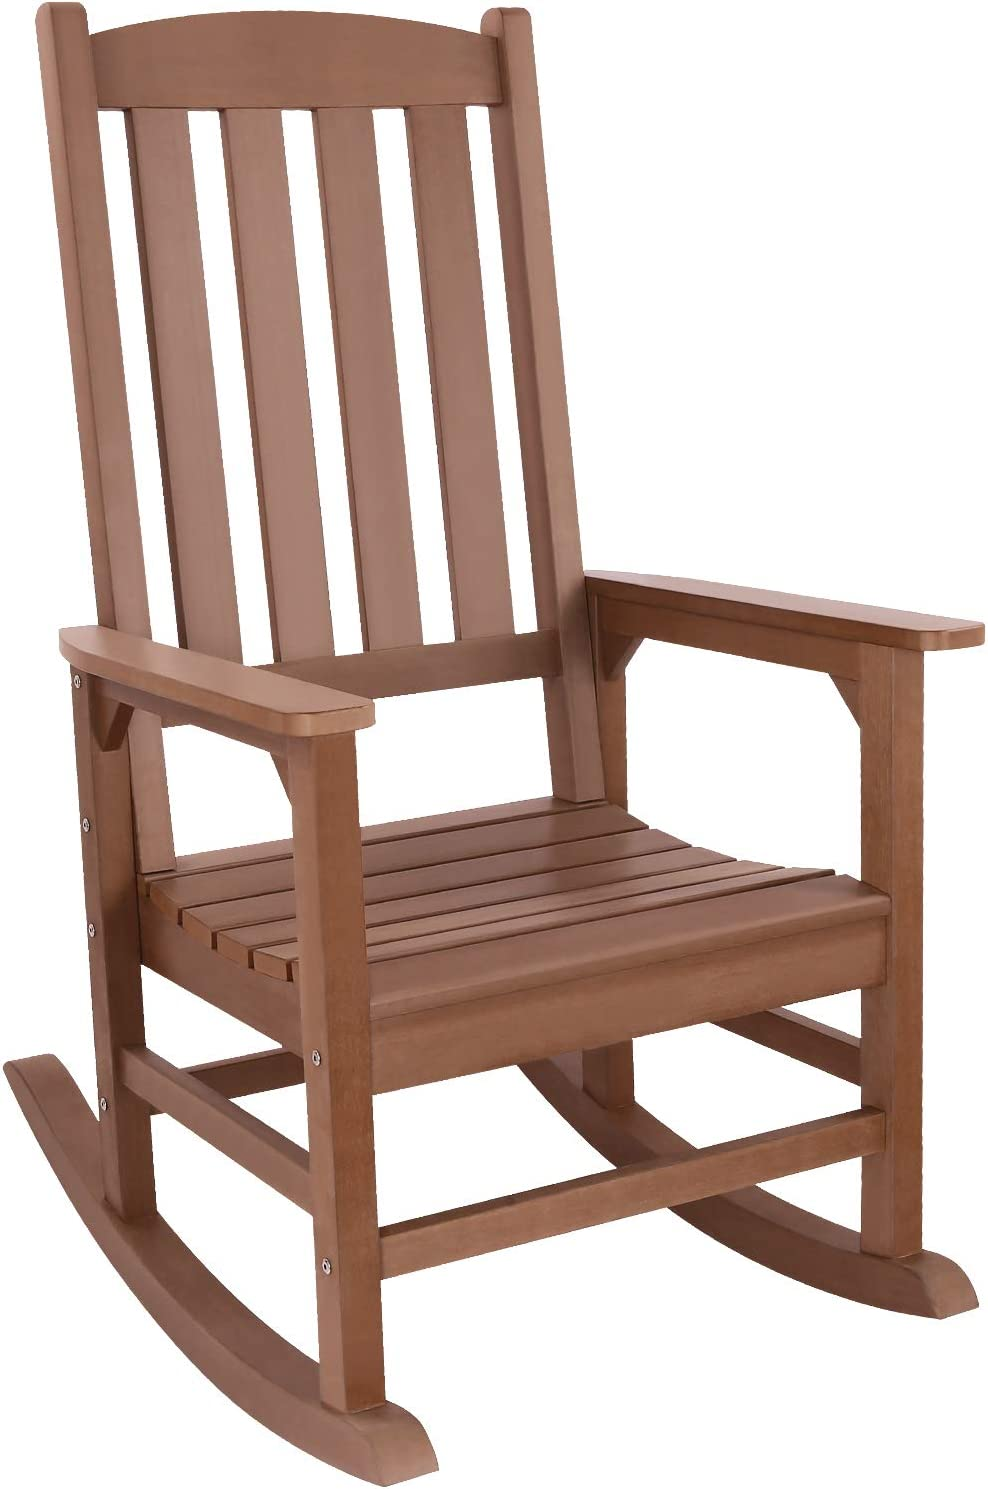 Outdoor Rocking Chair, REYLEO Presidential Rocking Chair Supports up to 350 lbs, All-Weather Polystyrene Rocker, Oversized Porch Rocking Chair, for Garden, Balcony, Backyard and Patio